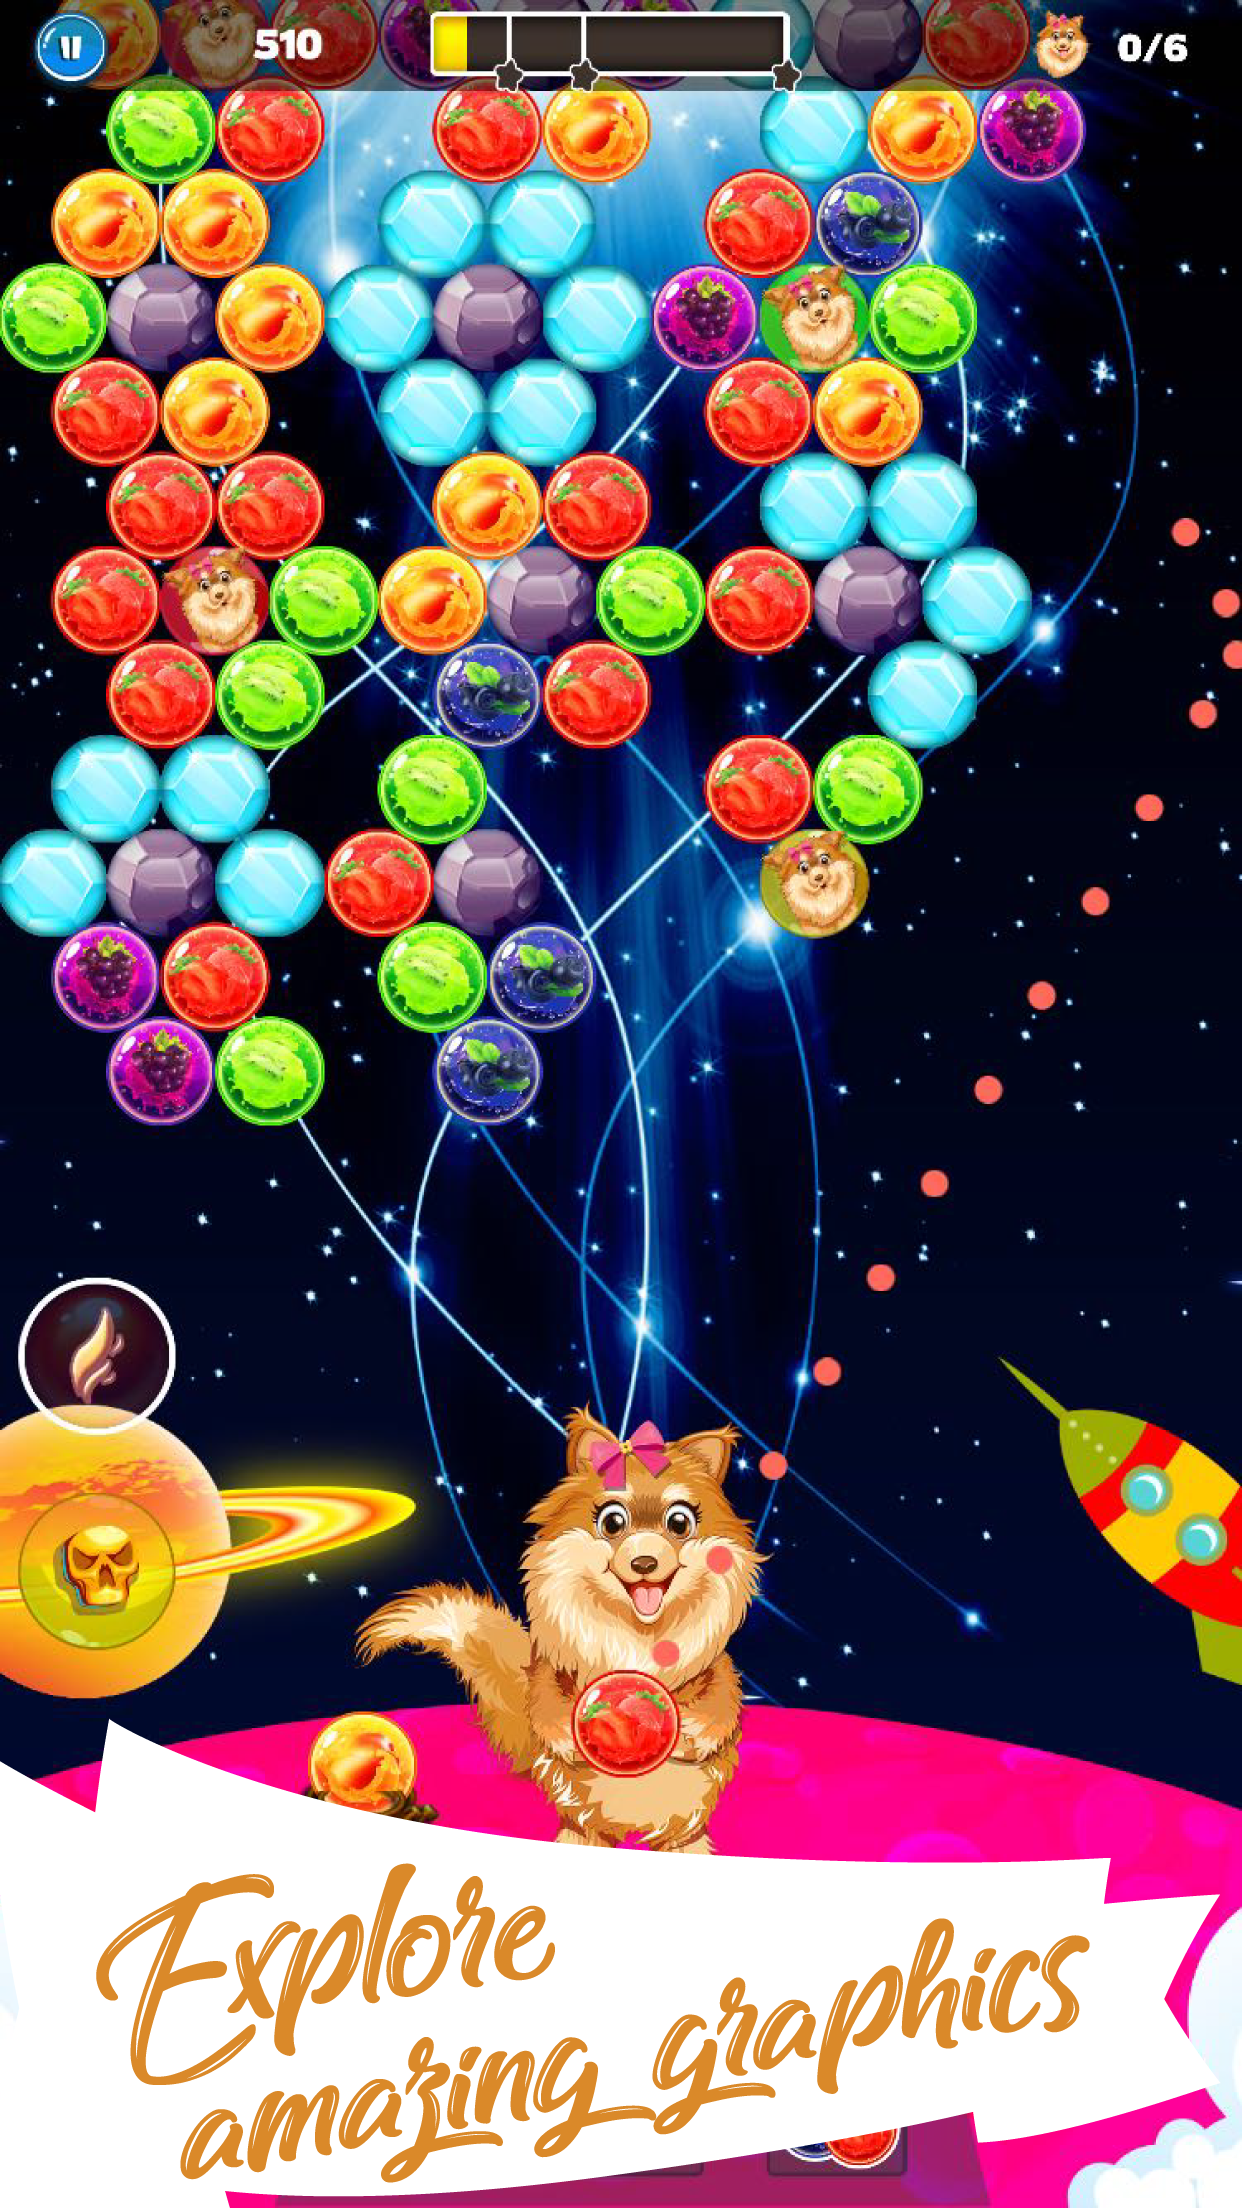 Play Doggy Bubble Shooter Fun Game with over 300